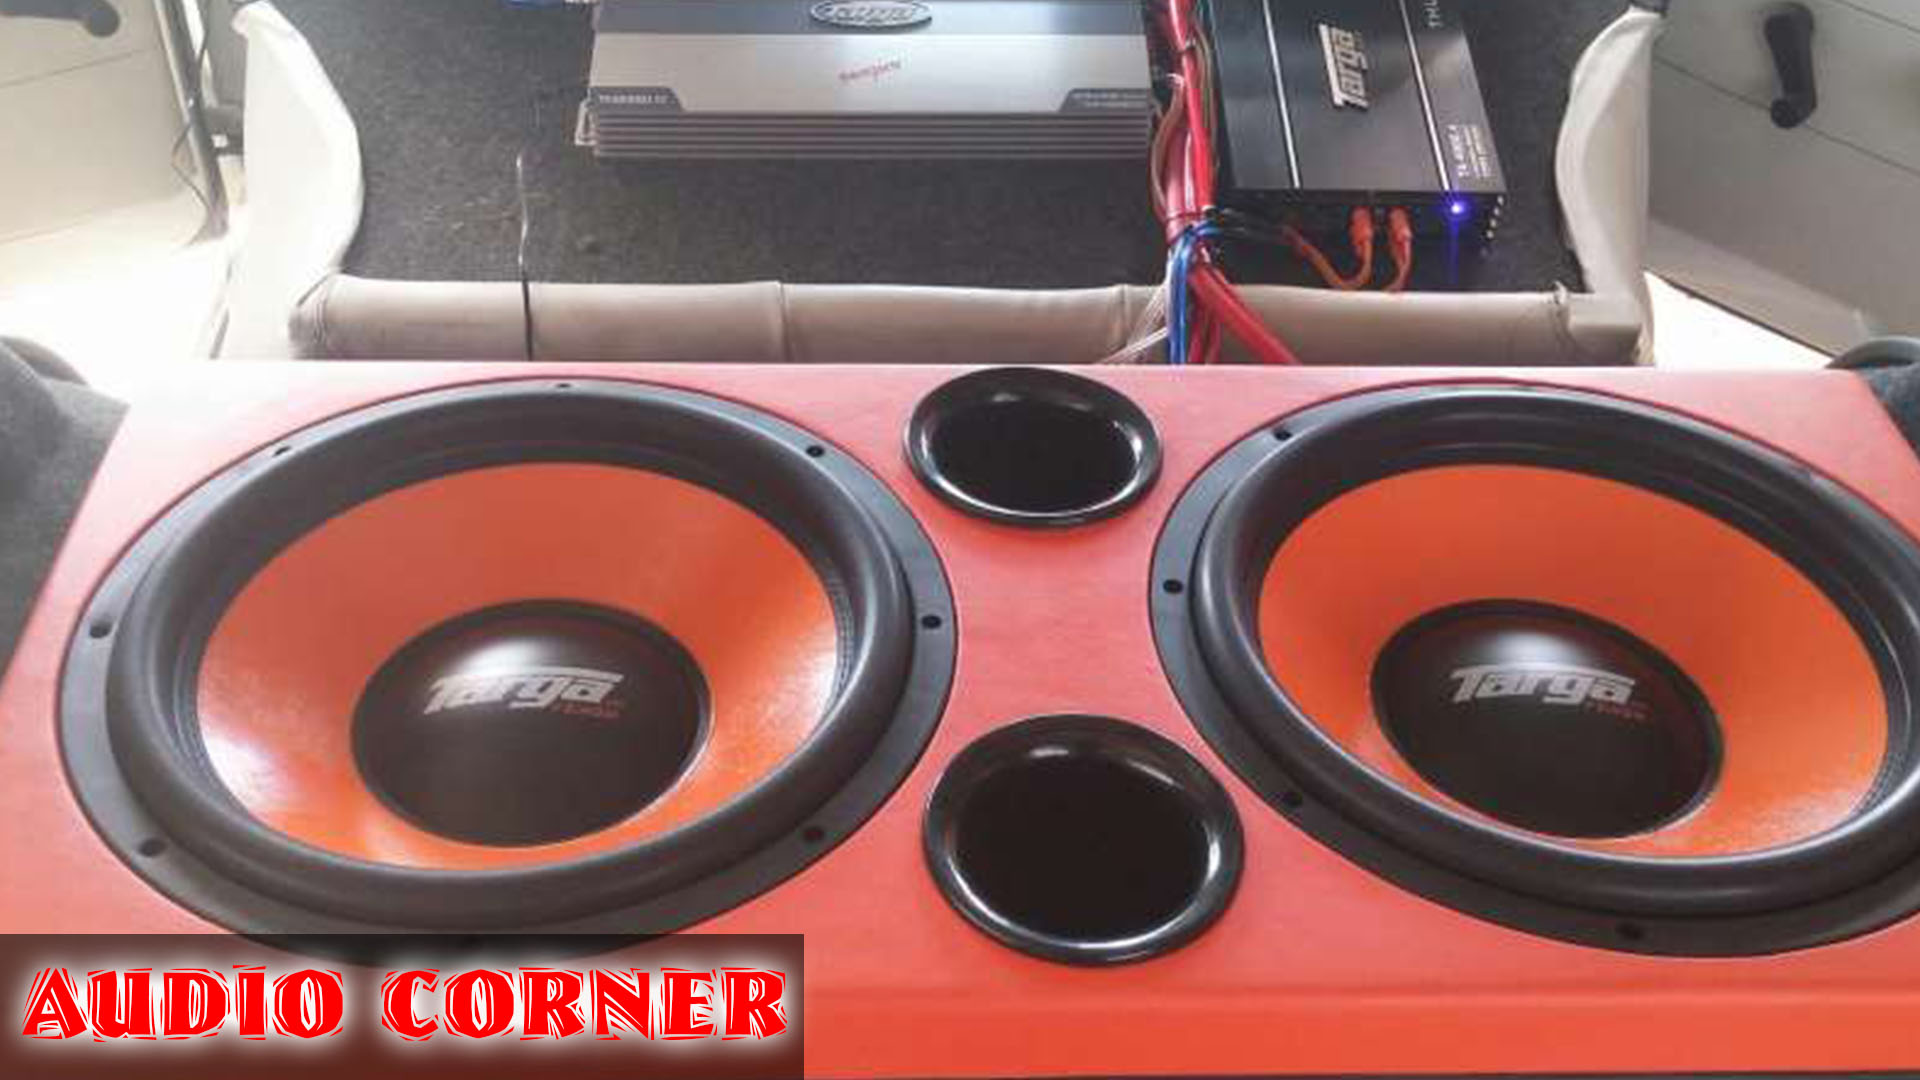 Audio Corner Music Sound Equipment Polokwane